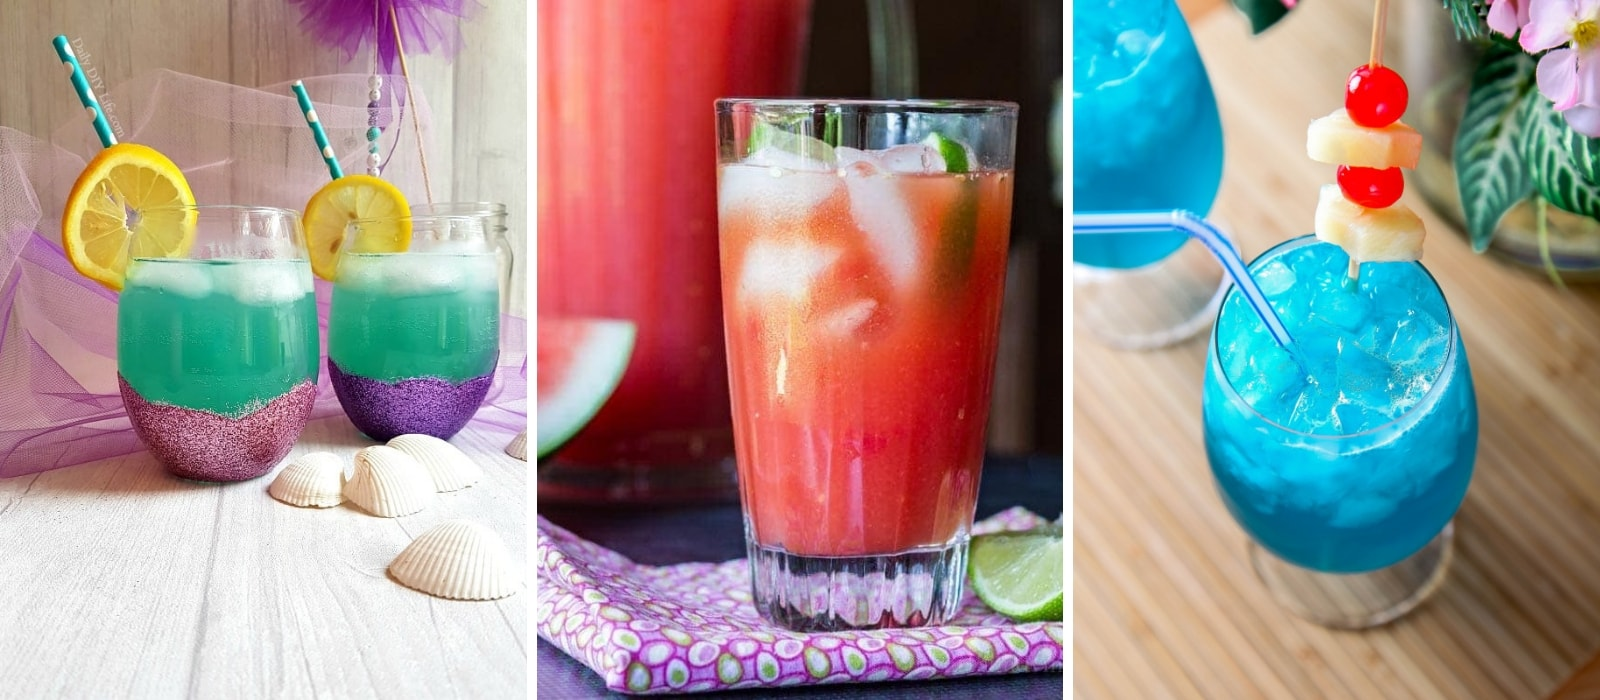 14 Must Make Rum Cocktails| The Best Rum Cocktails| Rum Cocktail Recipes| Easy Rum Cocktails| Rum Cocktails for a Crowd| #rum #rumcocktails #cocktails